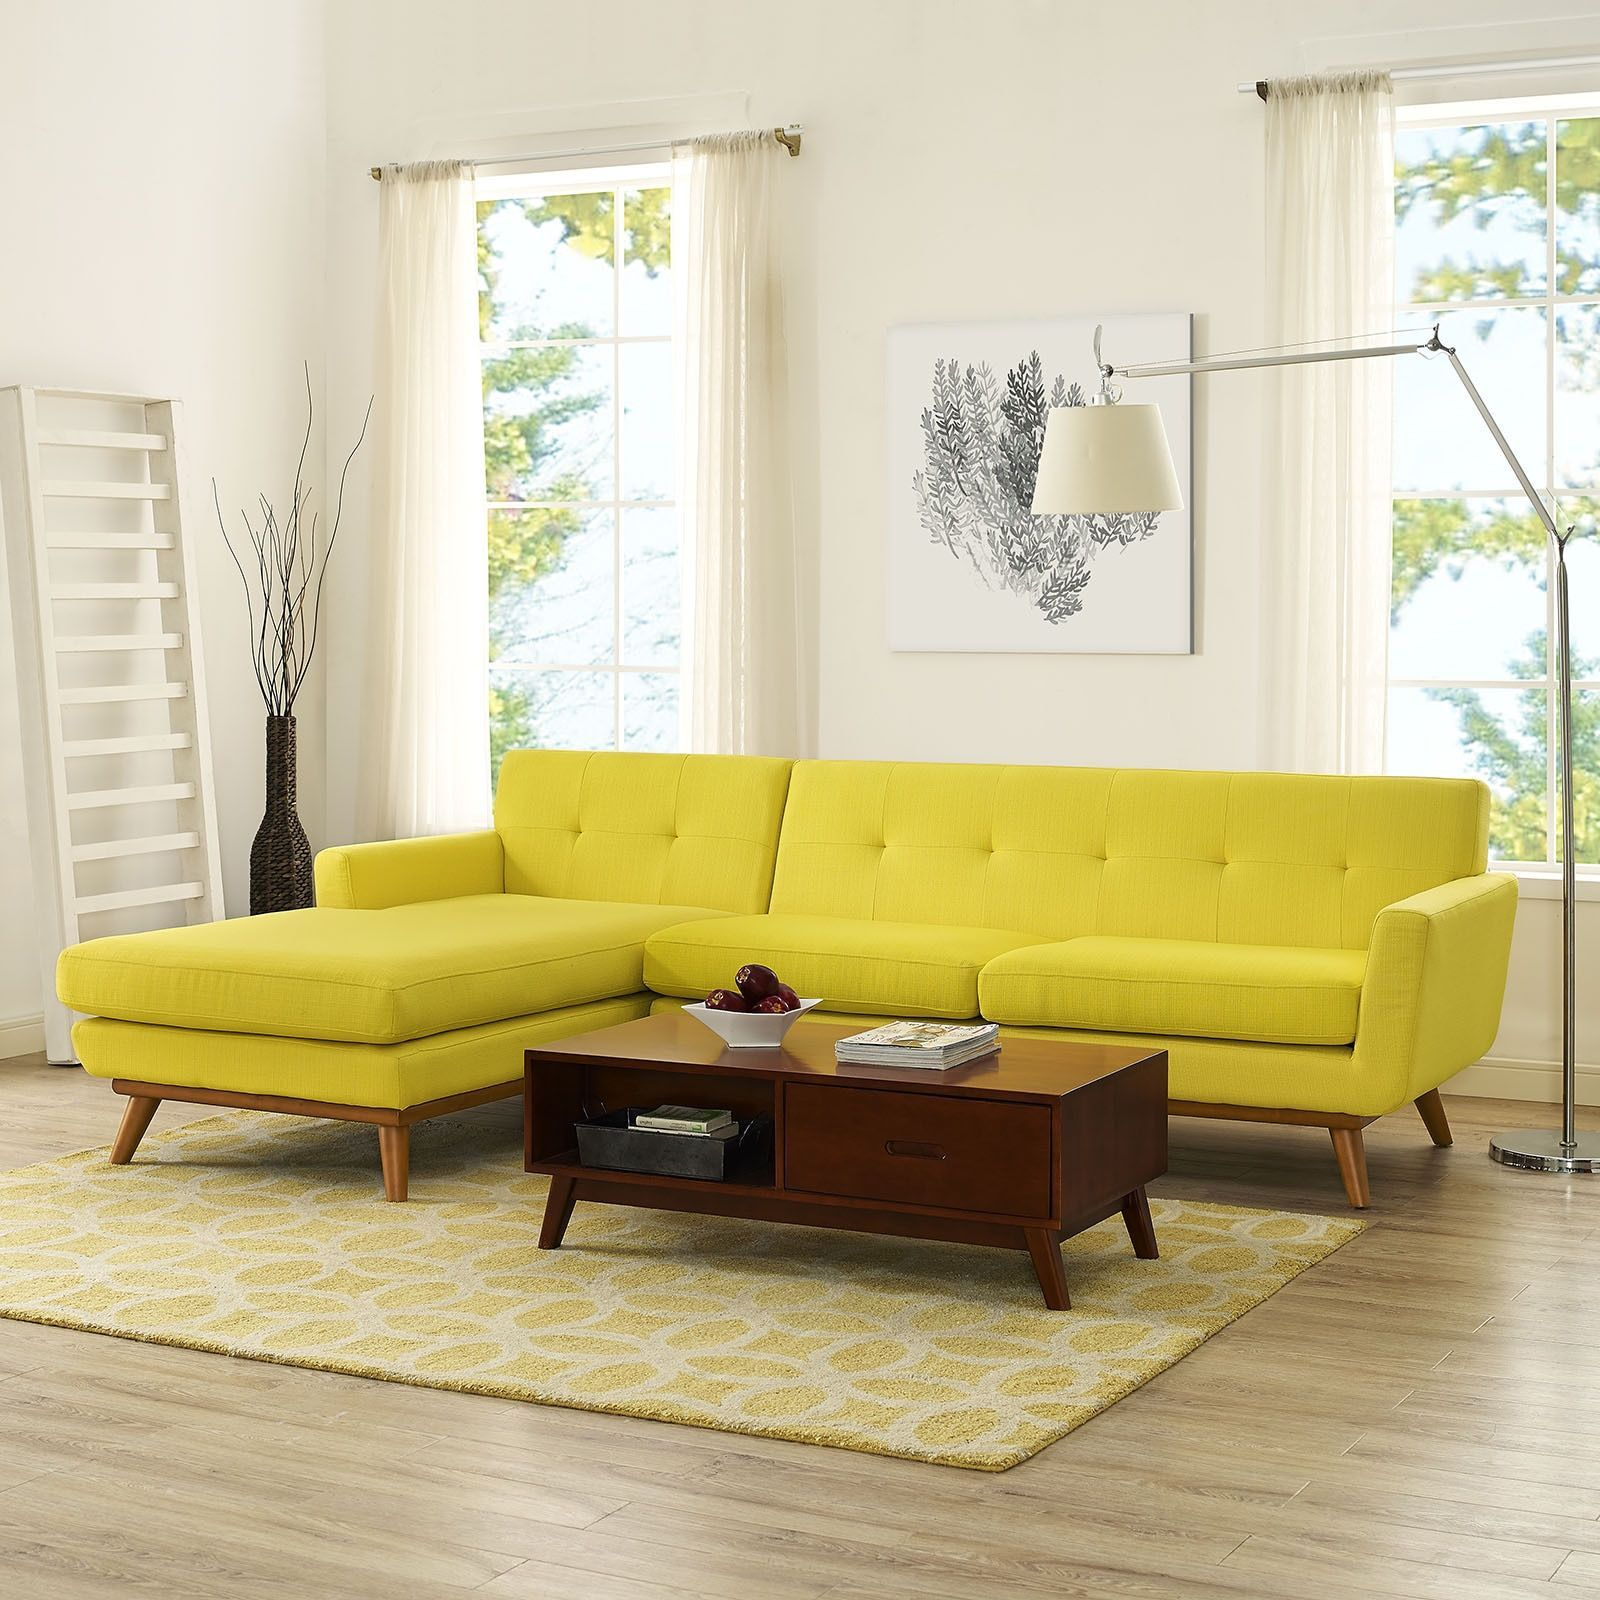 Modway Engage Mid Century Modern Tufted Sectional Azure Beige f